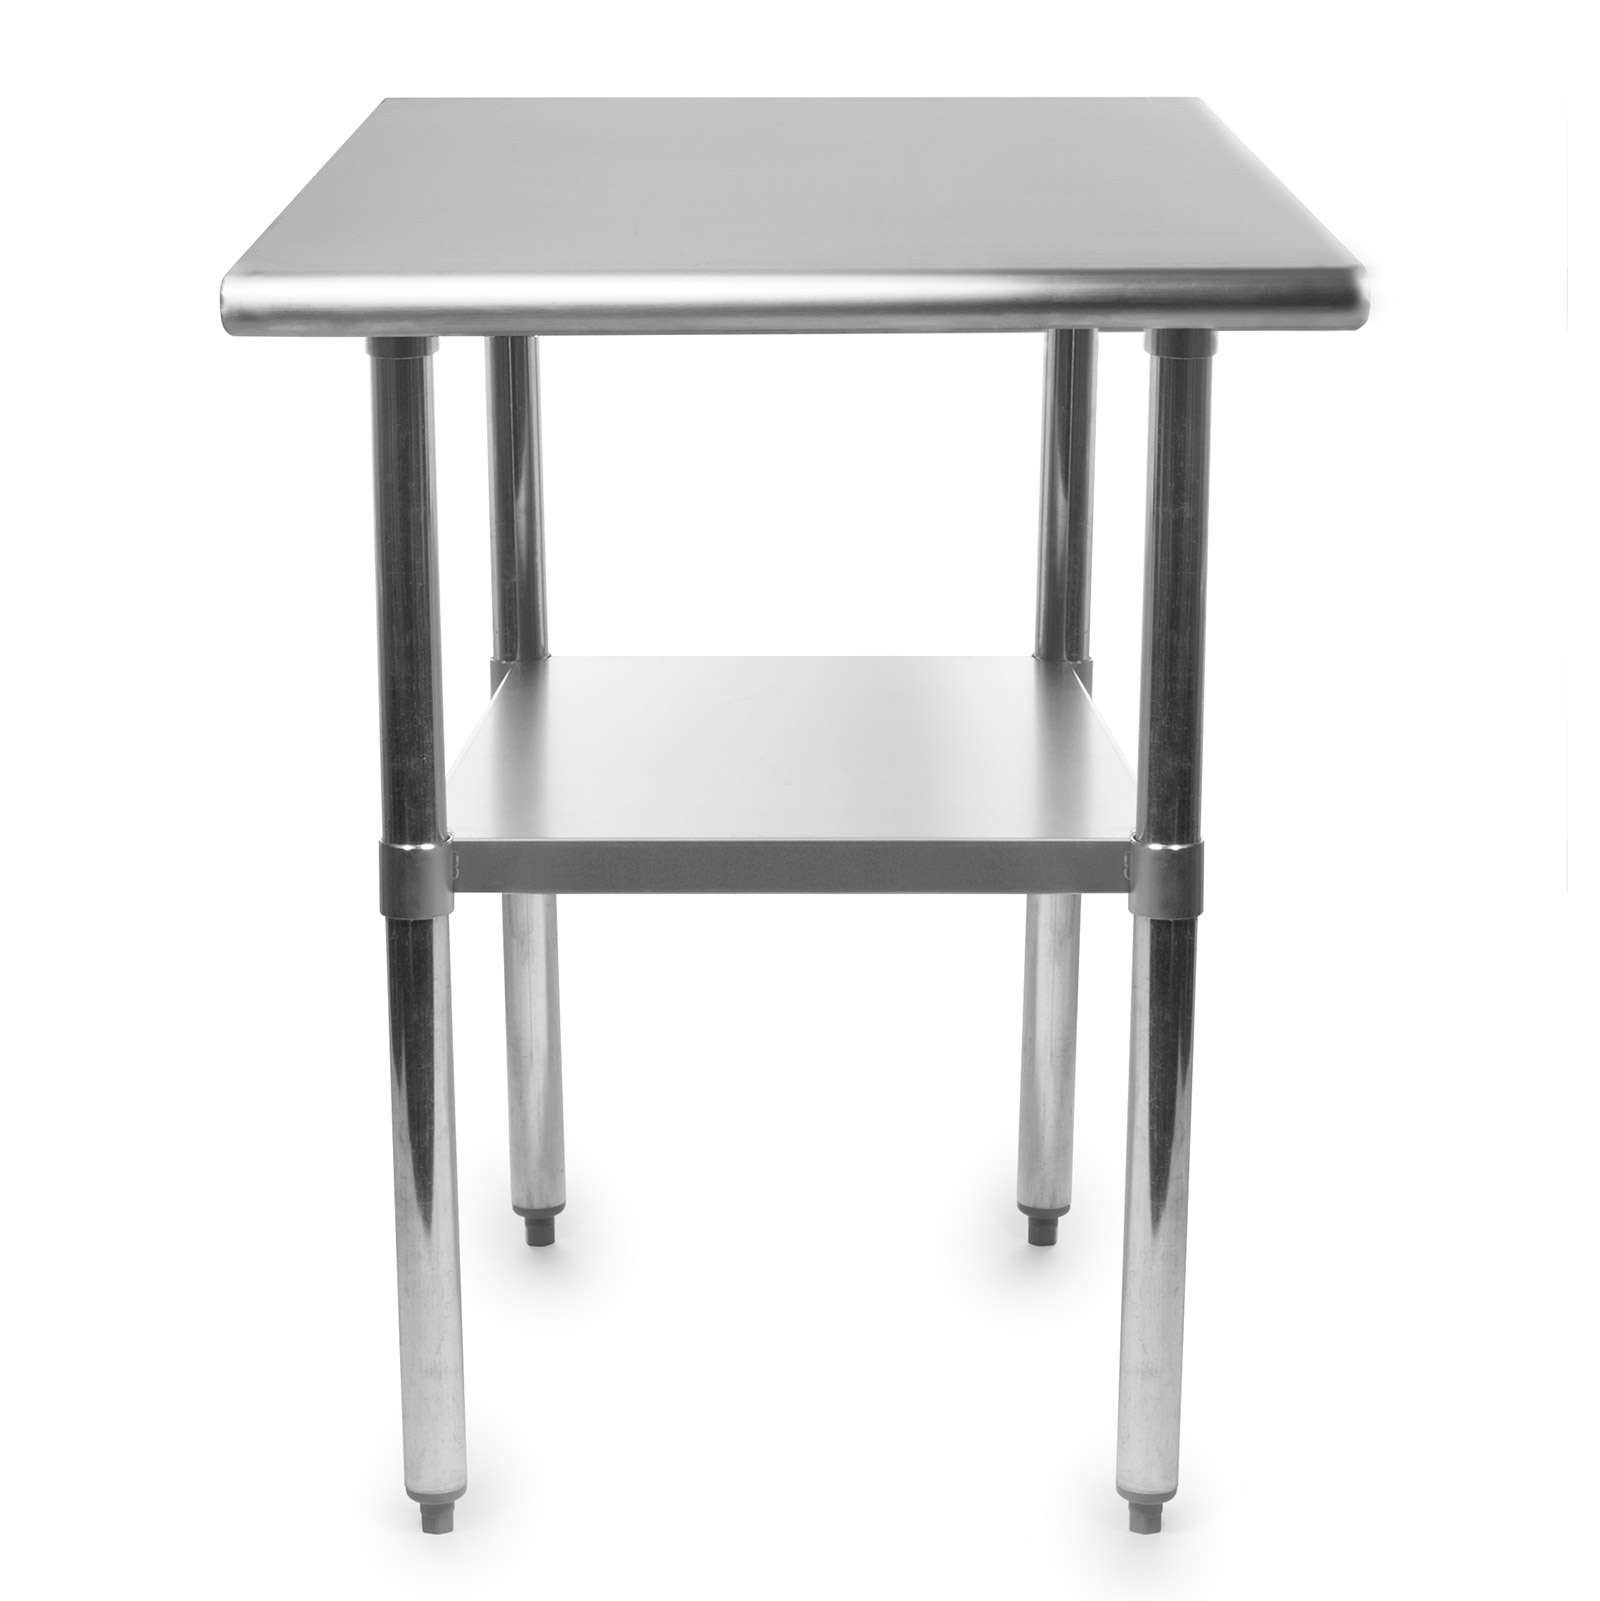 stainless steel commercial kitchen work food prep table 24 x 30